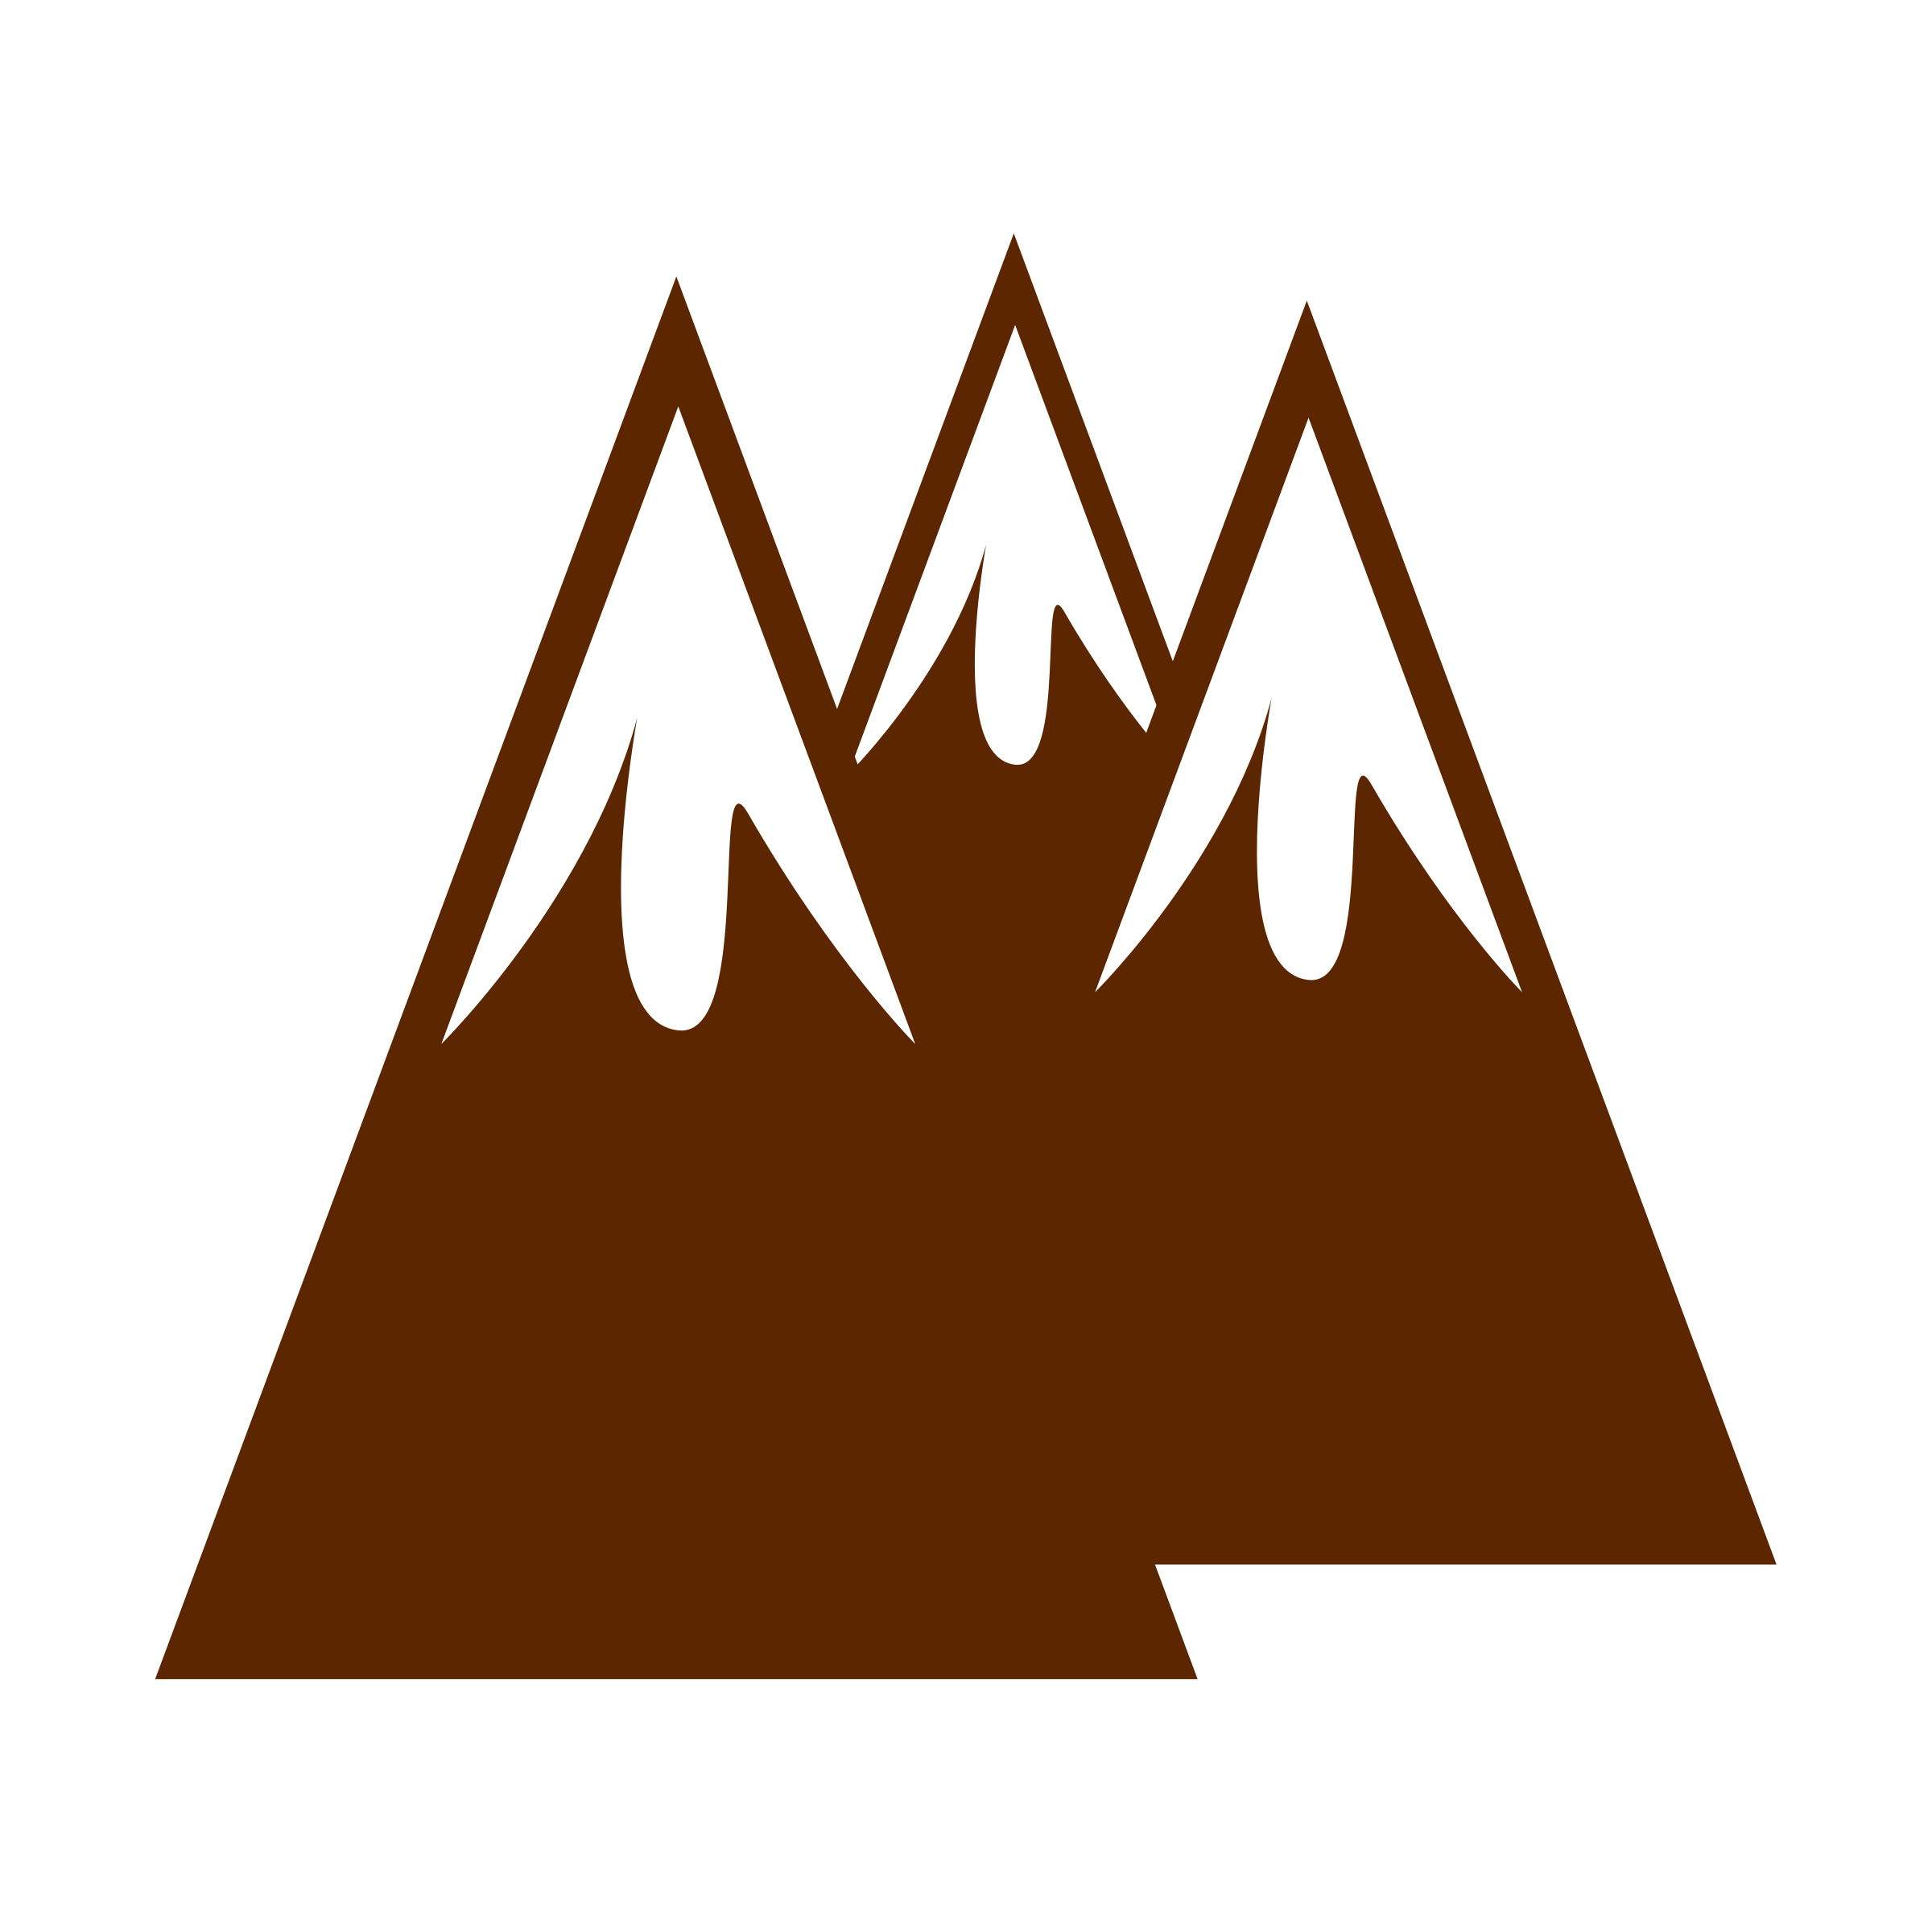 Mountains clipart. Big image png